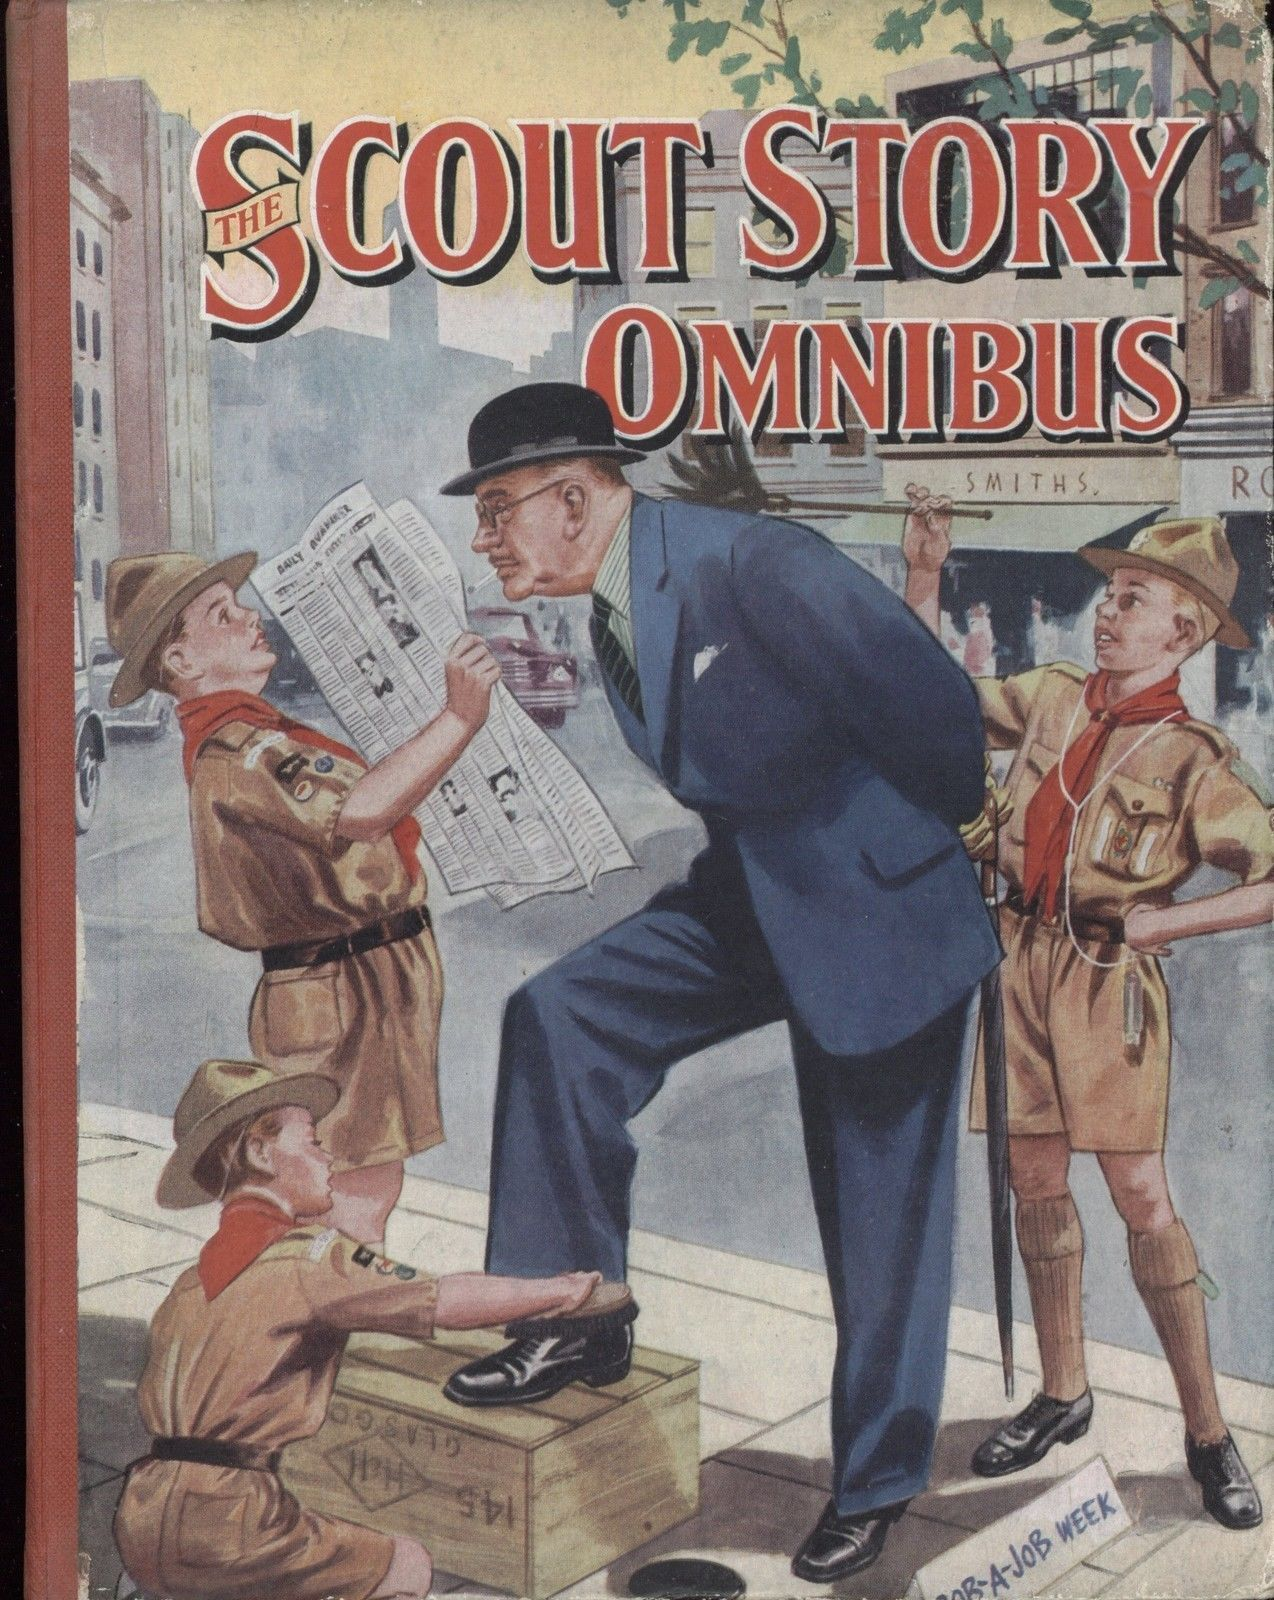 The Scout Story Omnibus Annual